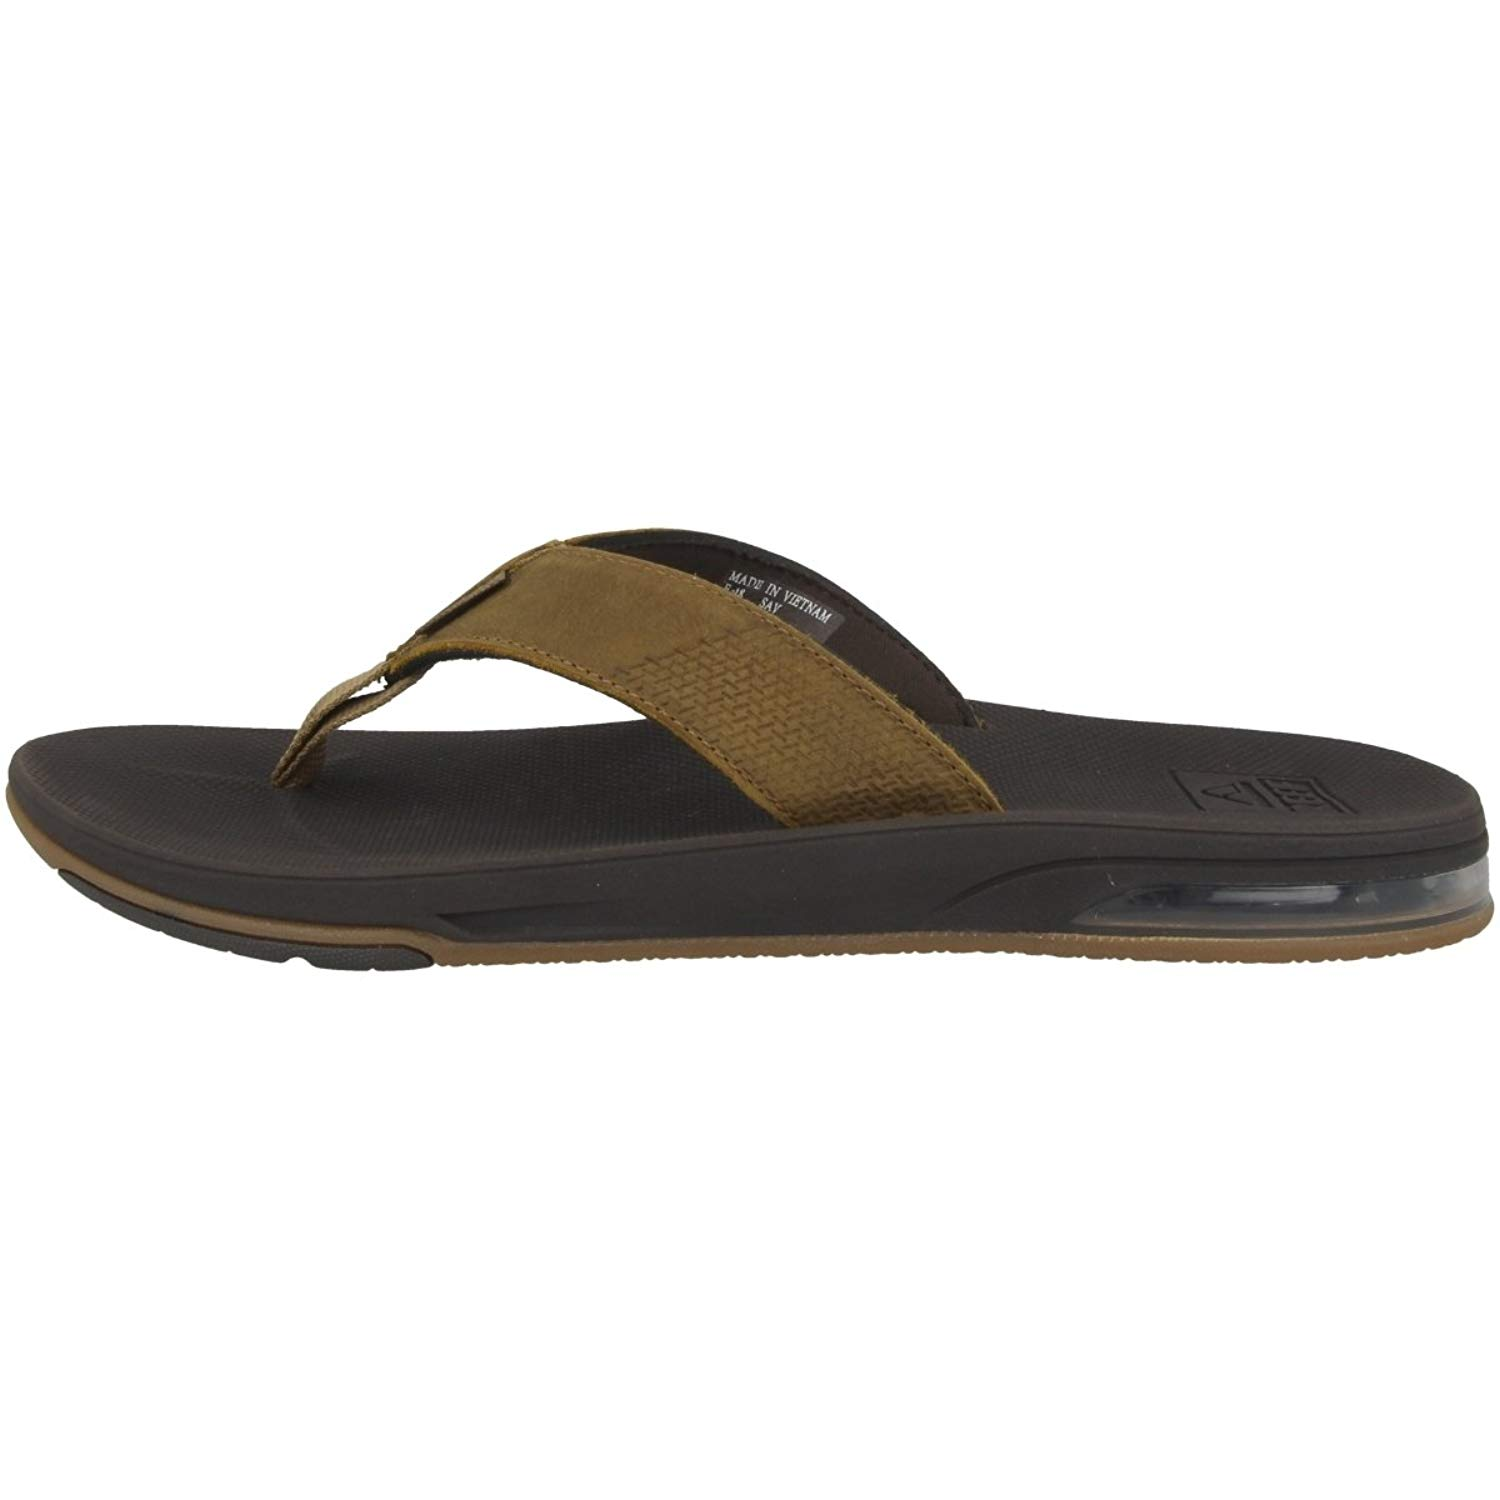 fea8663b2cb8 Get Quotations · Reef Men s Leather Fanning Low Sandals